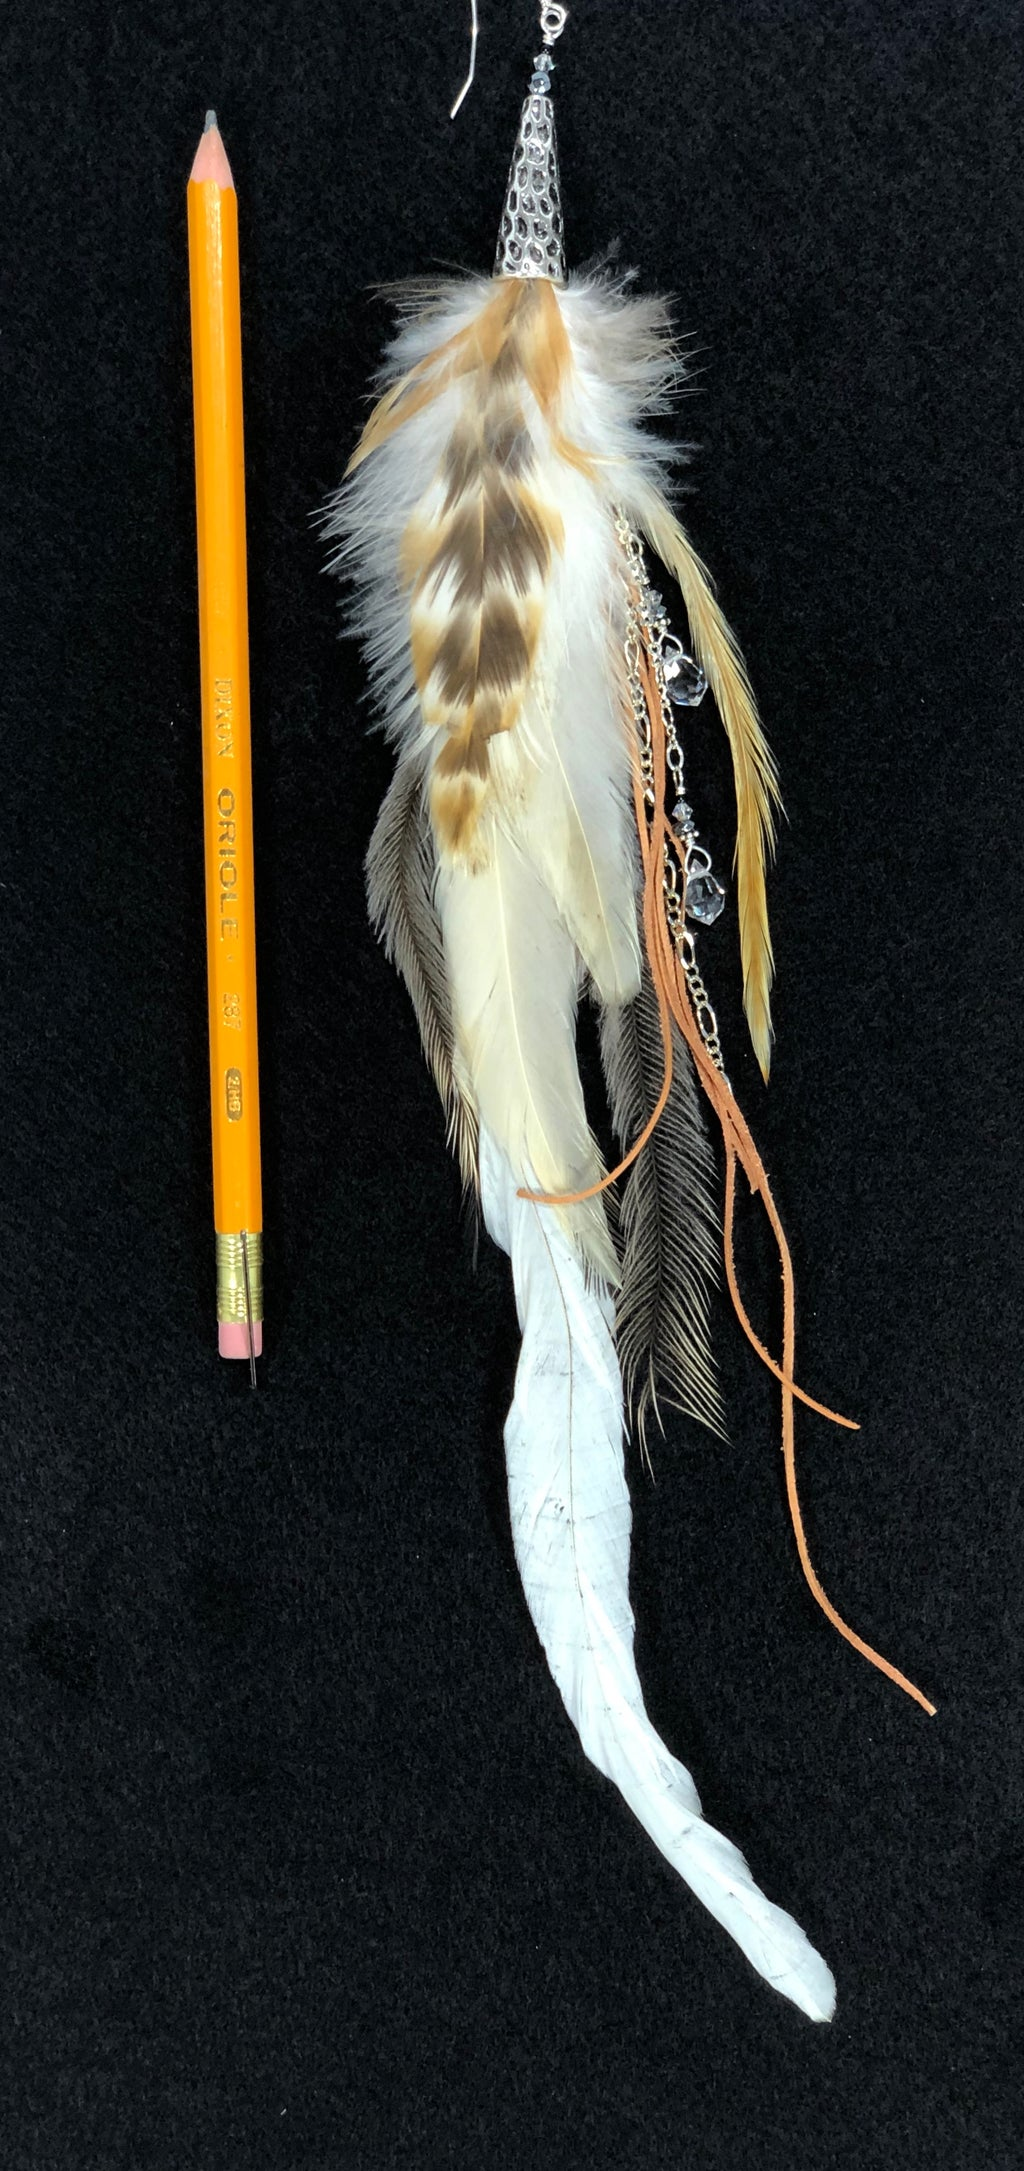 Single feather earring ER01 with natural colored feathers and Silver accents